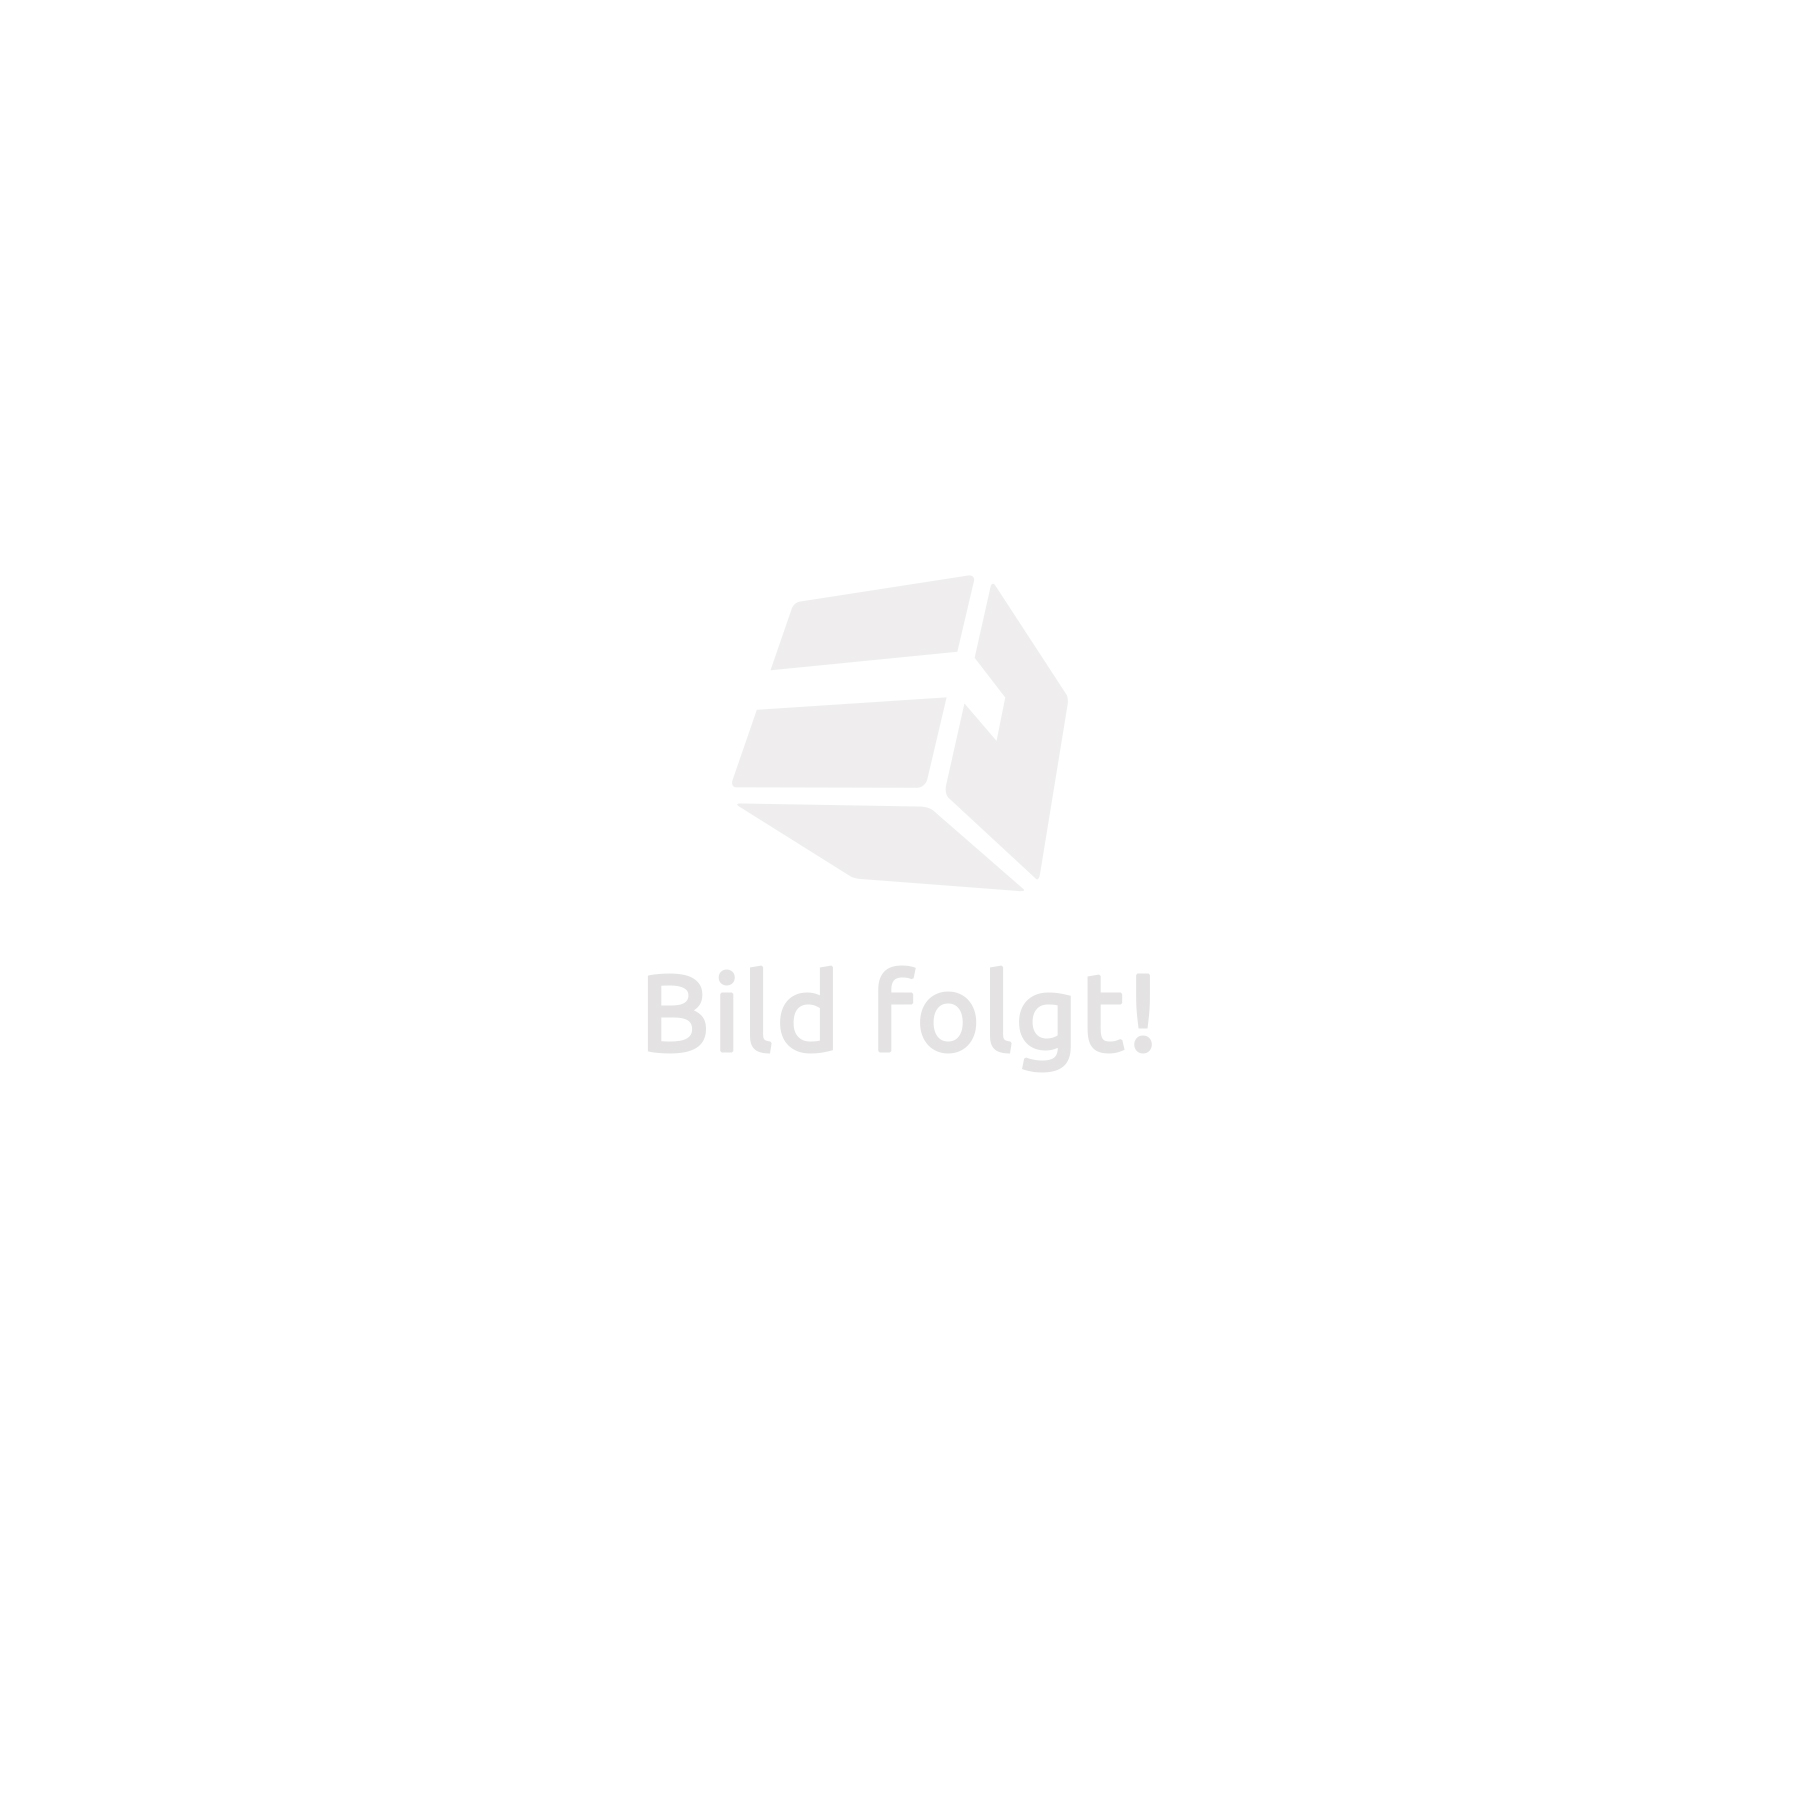 Dutch oven cookware set made of cast iron in wooden box